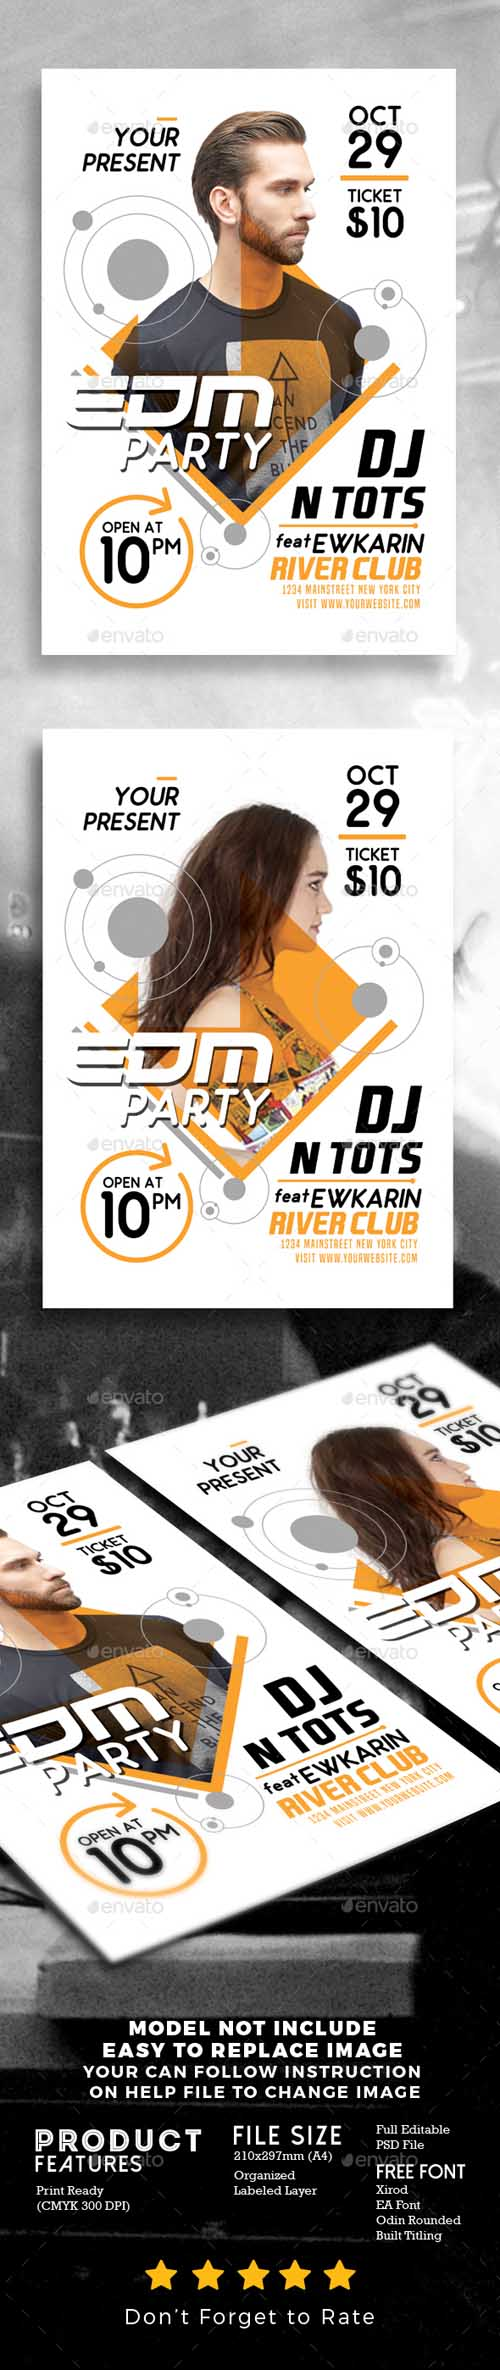 EDM Party Flyer Template 19223204